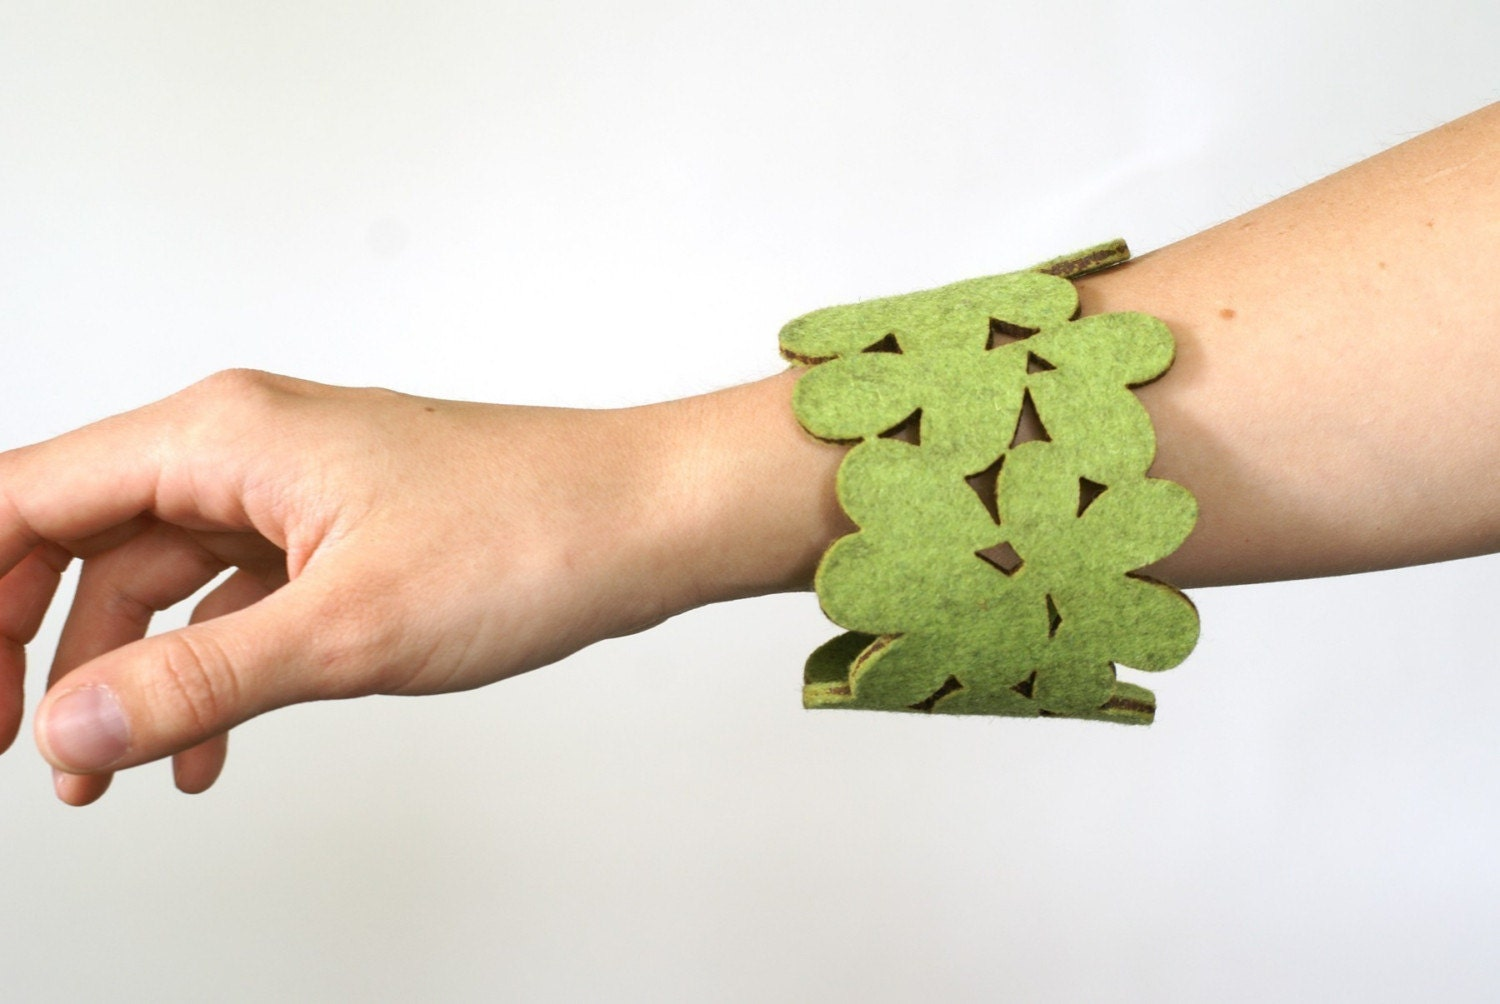 cozy/cuff - reusable cup sleeve and bracelet in light green wool felt - FREE SHIPPING